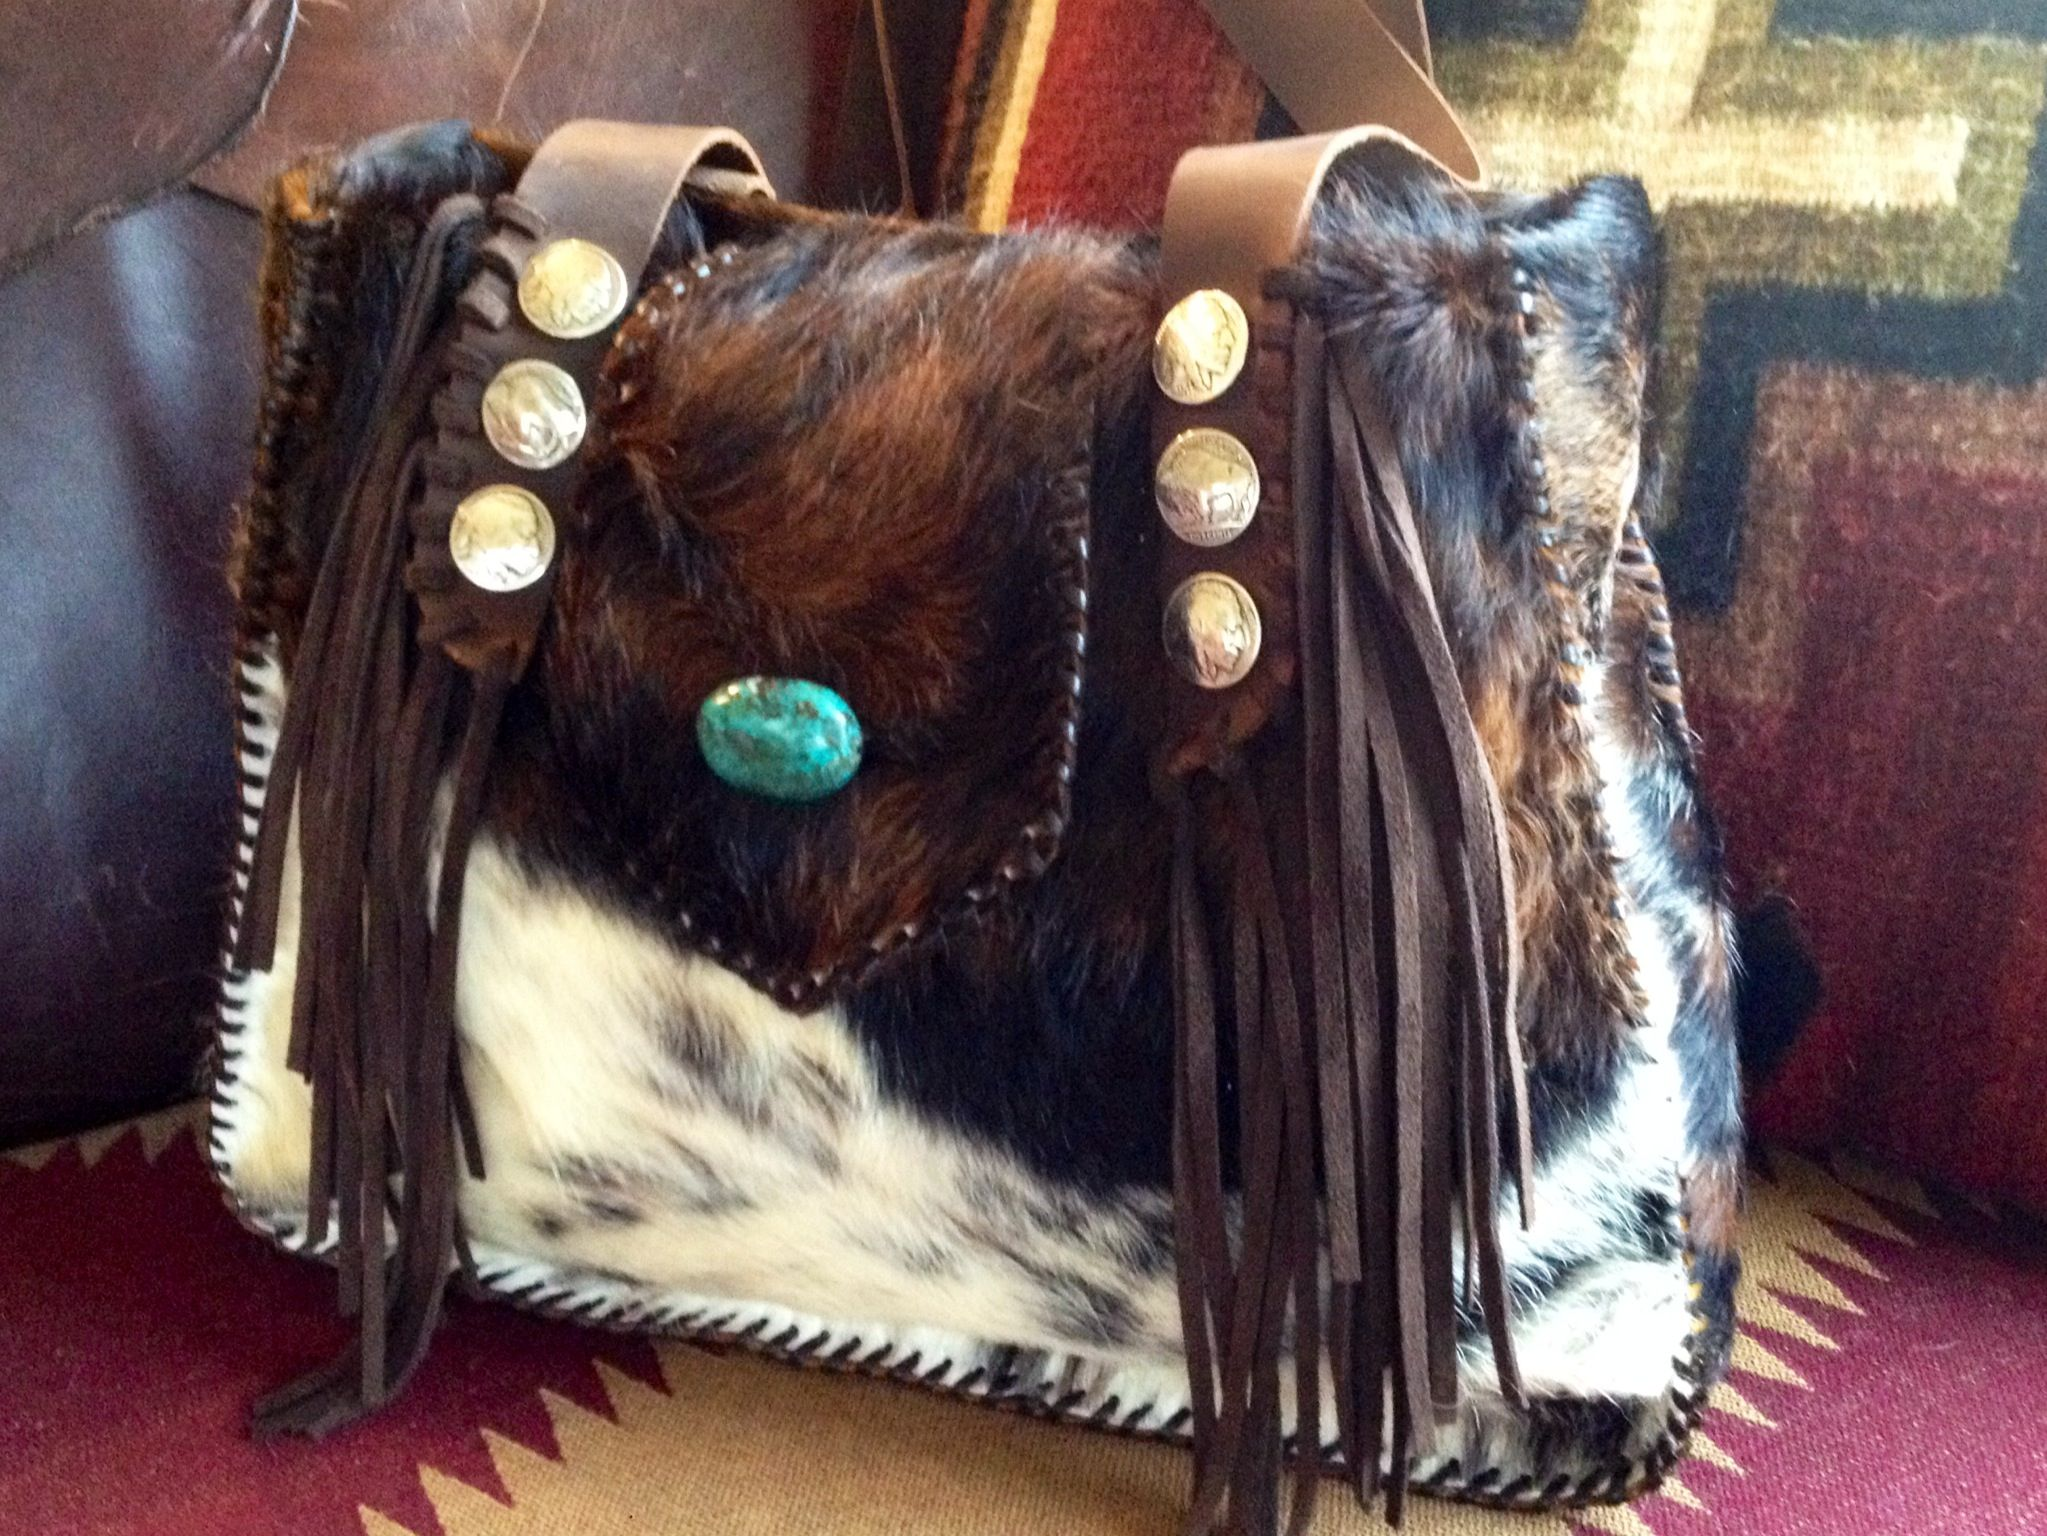 Little Big Bonnie from Go West Designs. Buffalo nickel conchos, turquoise, cowhide and suede. Made to order at gowestdesigns.us.